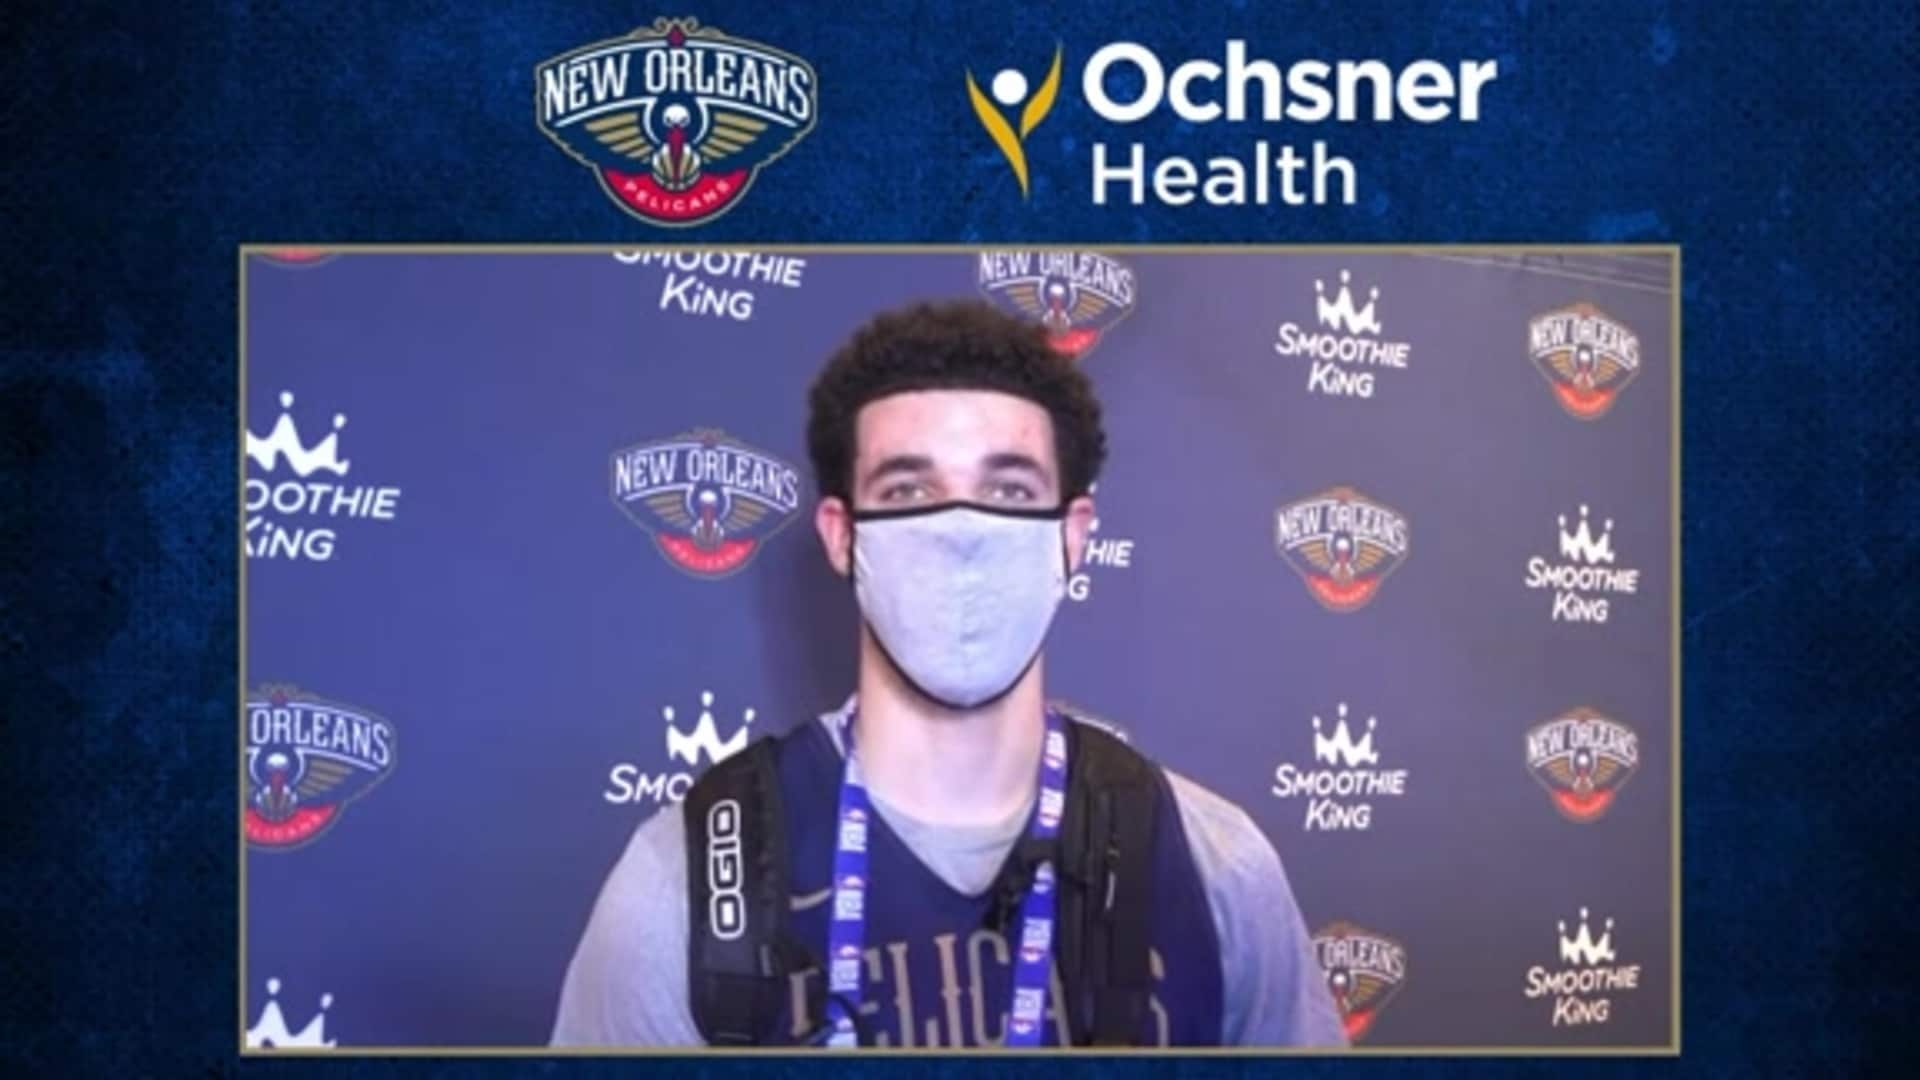 Lonzo Ball ready to bounce back in 2020-21 season | Ochsner Pelicans Practice